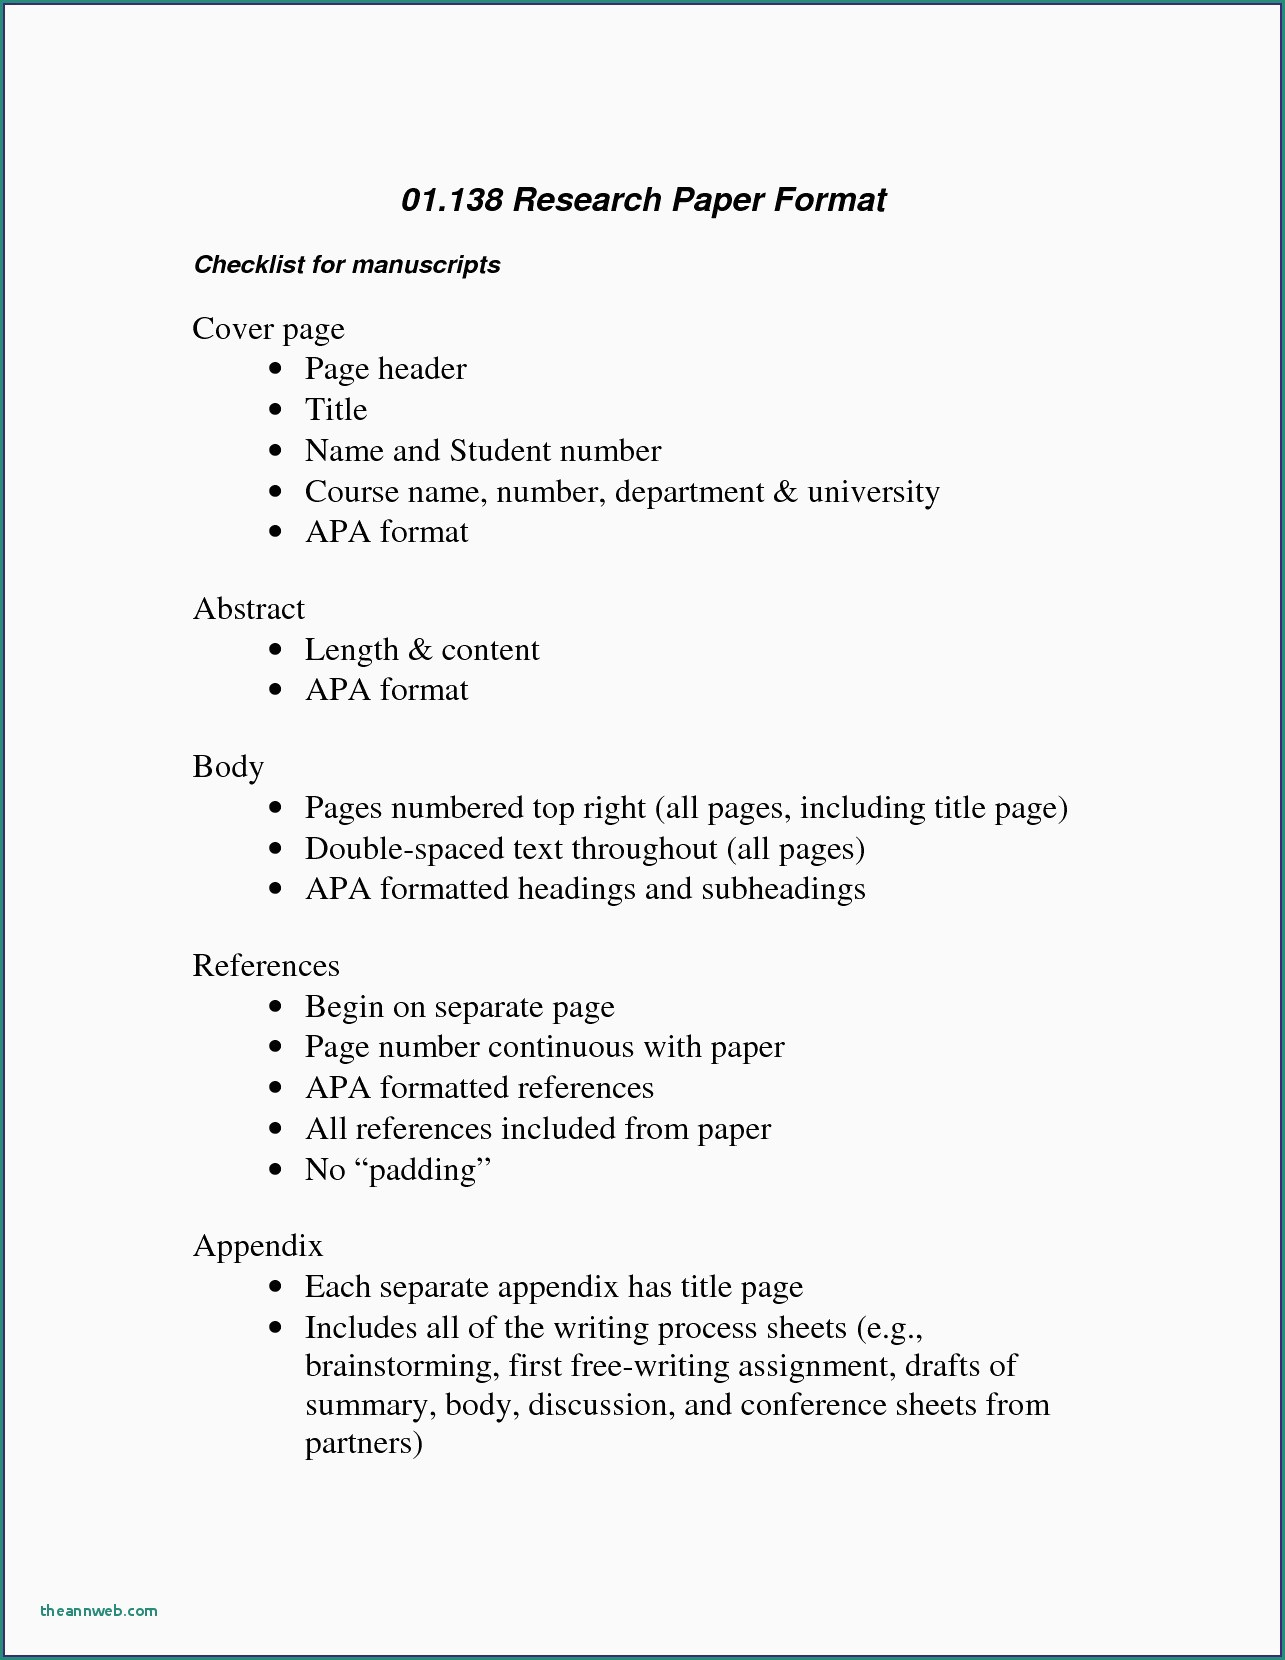 023 Apa Format Research Paper Sample Psychology Elegant Essay New Template Resume Fascinating Example 6th Edition 2012 Full